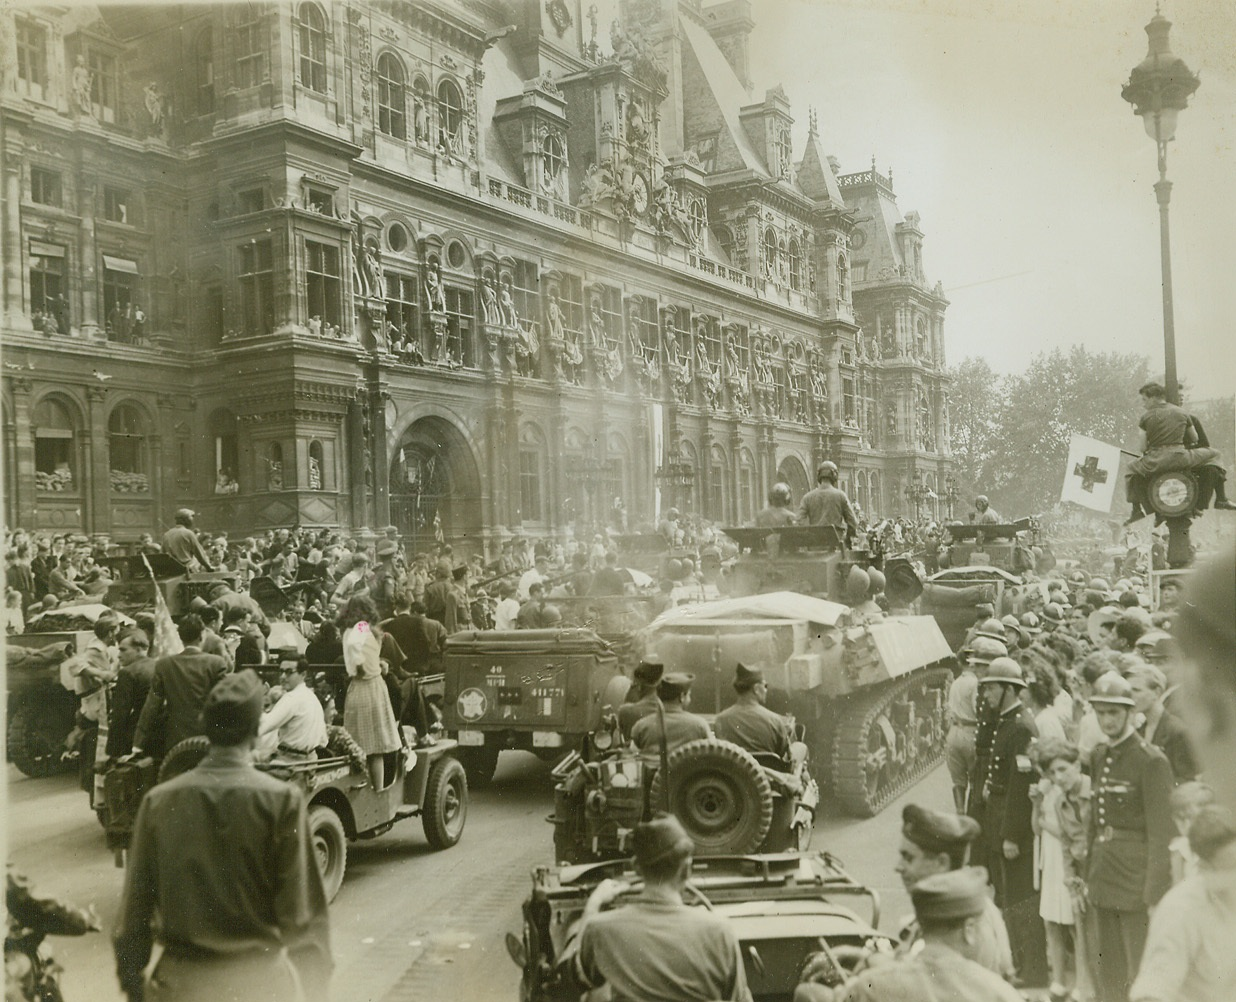 Stage Set For Panic, 8/28/1944. Paris—This was the scene in the Place de L'Hotel de Ville before snipers sent a panic-stricken crowd scurrying for their lives during the official reception for General Charles de Gaulle. The street is jammed with Allied armored vehicles and hundreds of celebrating Parisians. At left, spectators jam the windows of the Hotel de Ville, while at right one spectator has climbed to a perch halfway up a lamp post to witness the celebration.  Credit: ACME photo by Andy Lopez for the War Picture Pool;